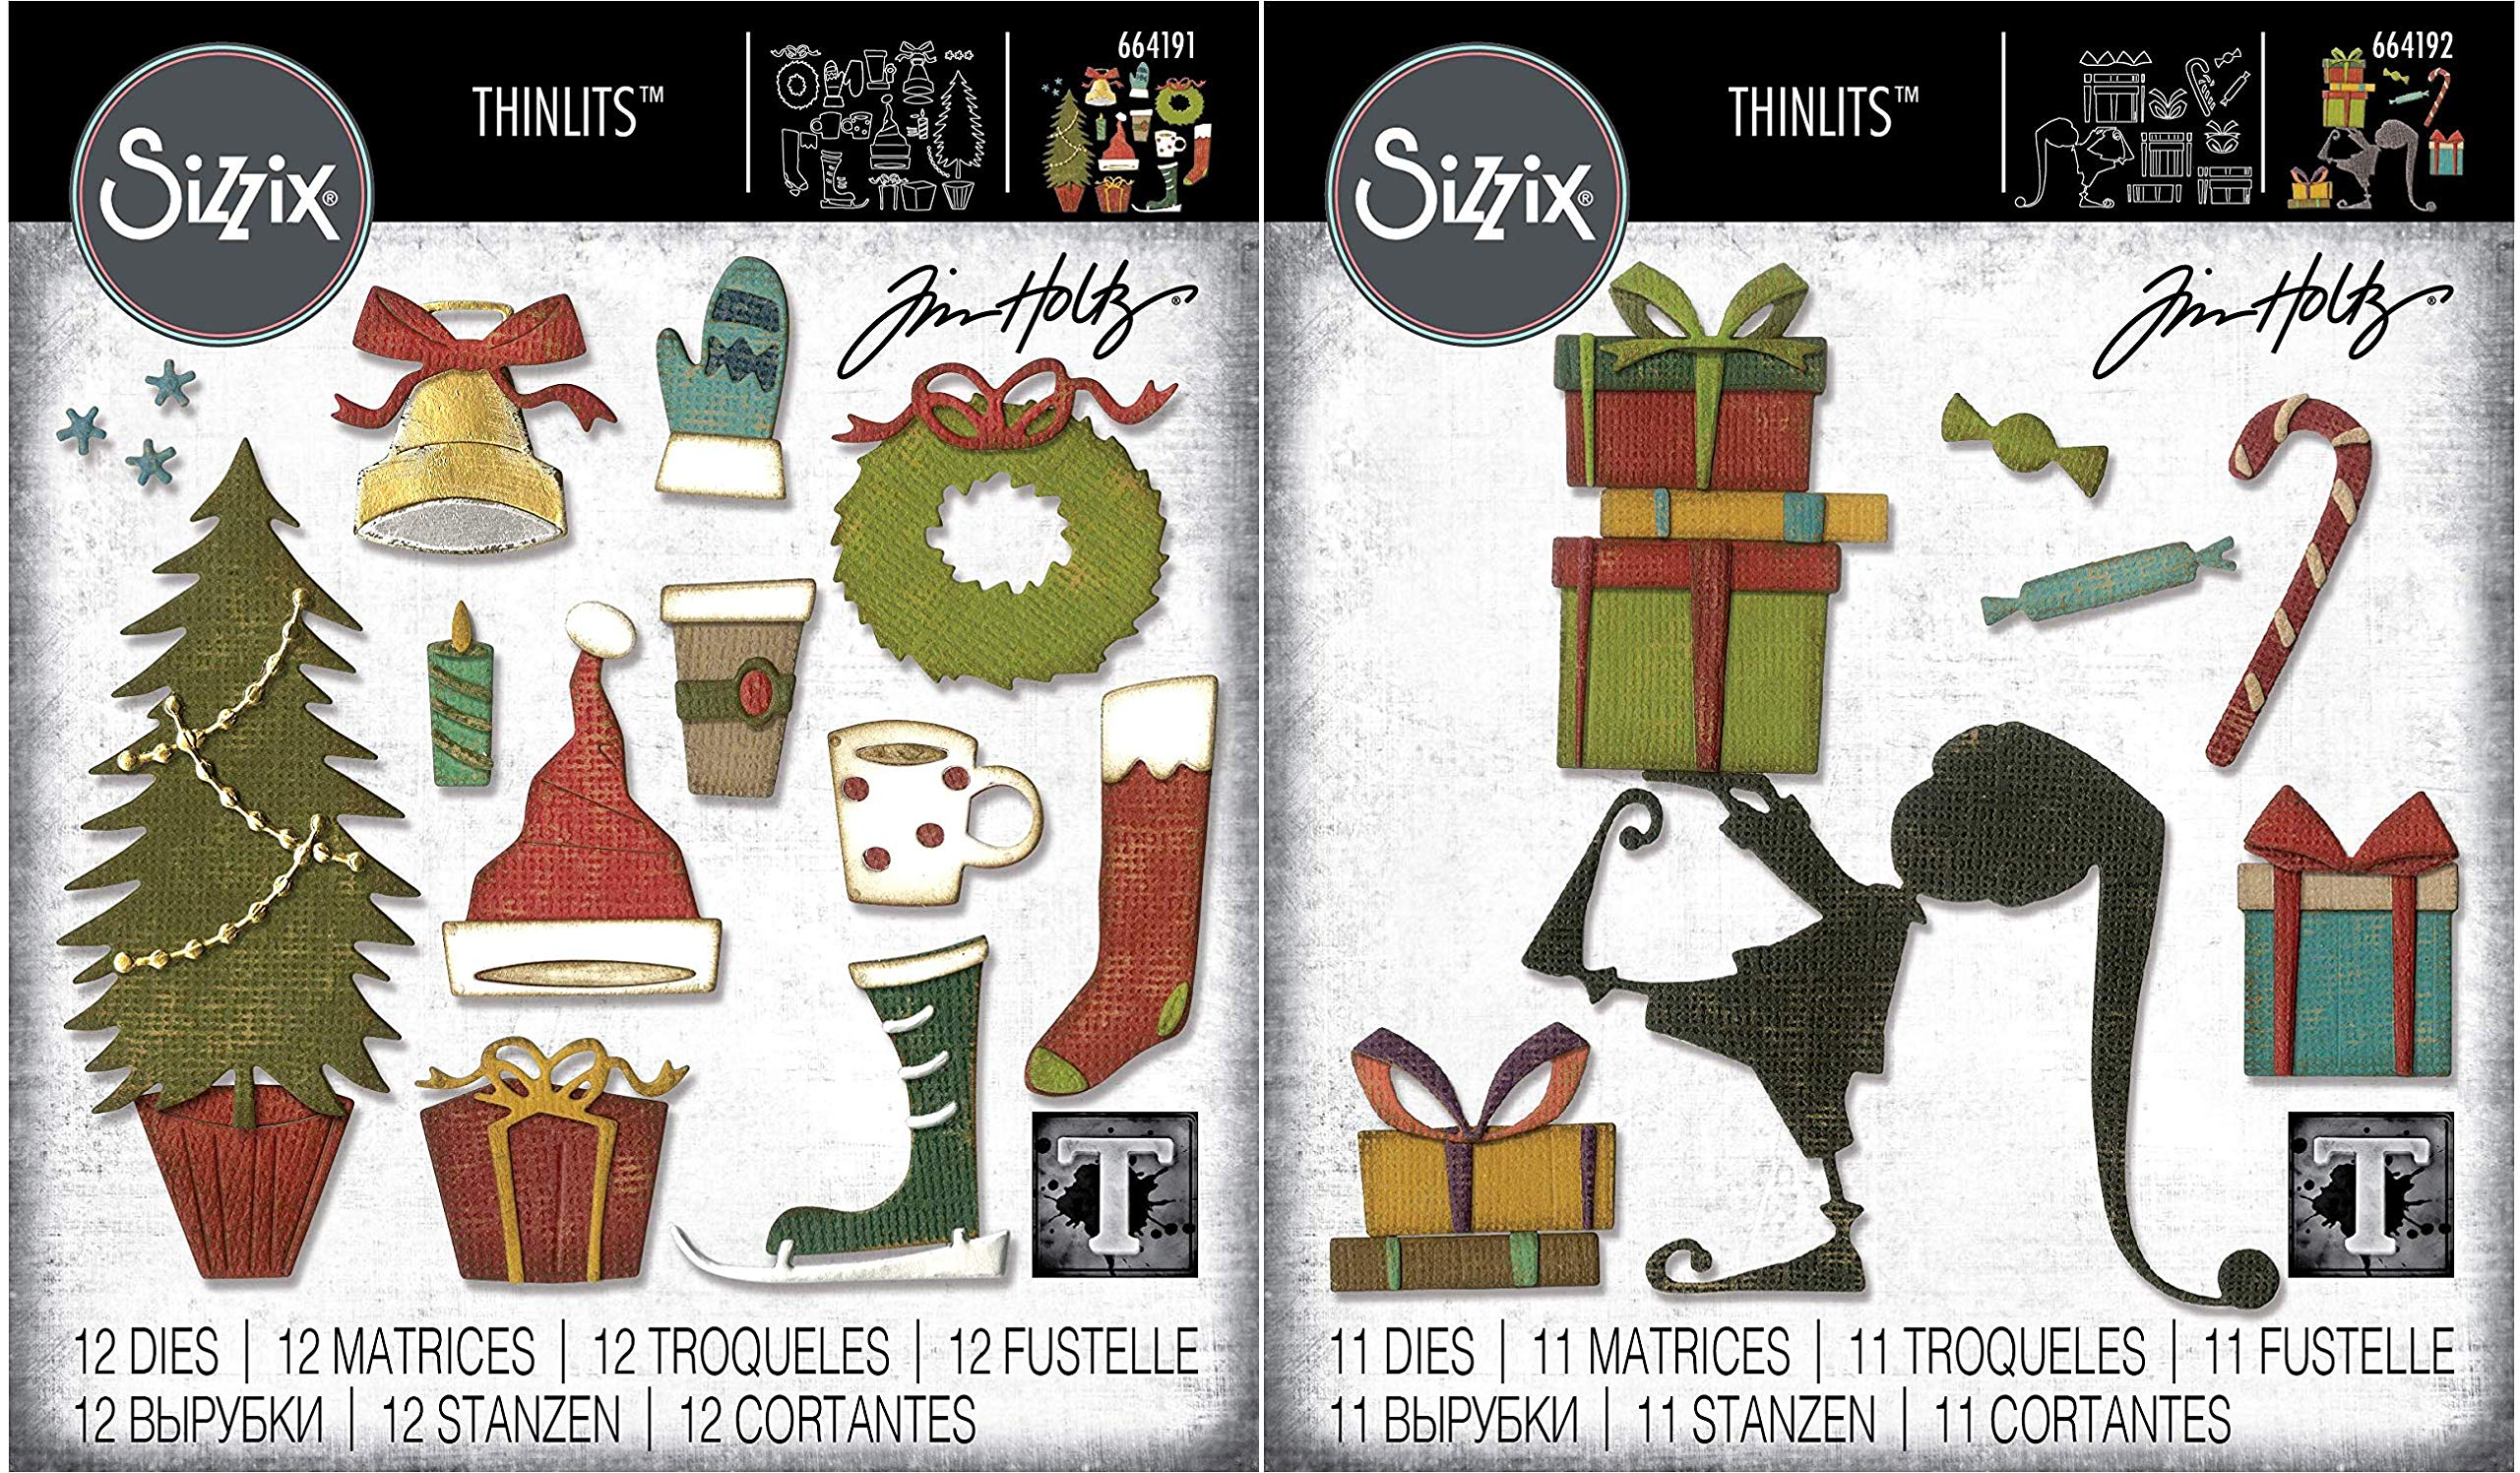 Tim Holtz Sizzix Holiday 2019 Thinlit Sets - Festive Things and Santa's Helper - 2 Items